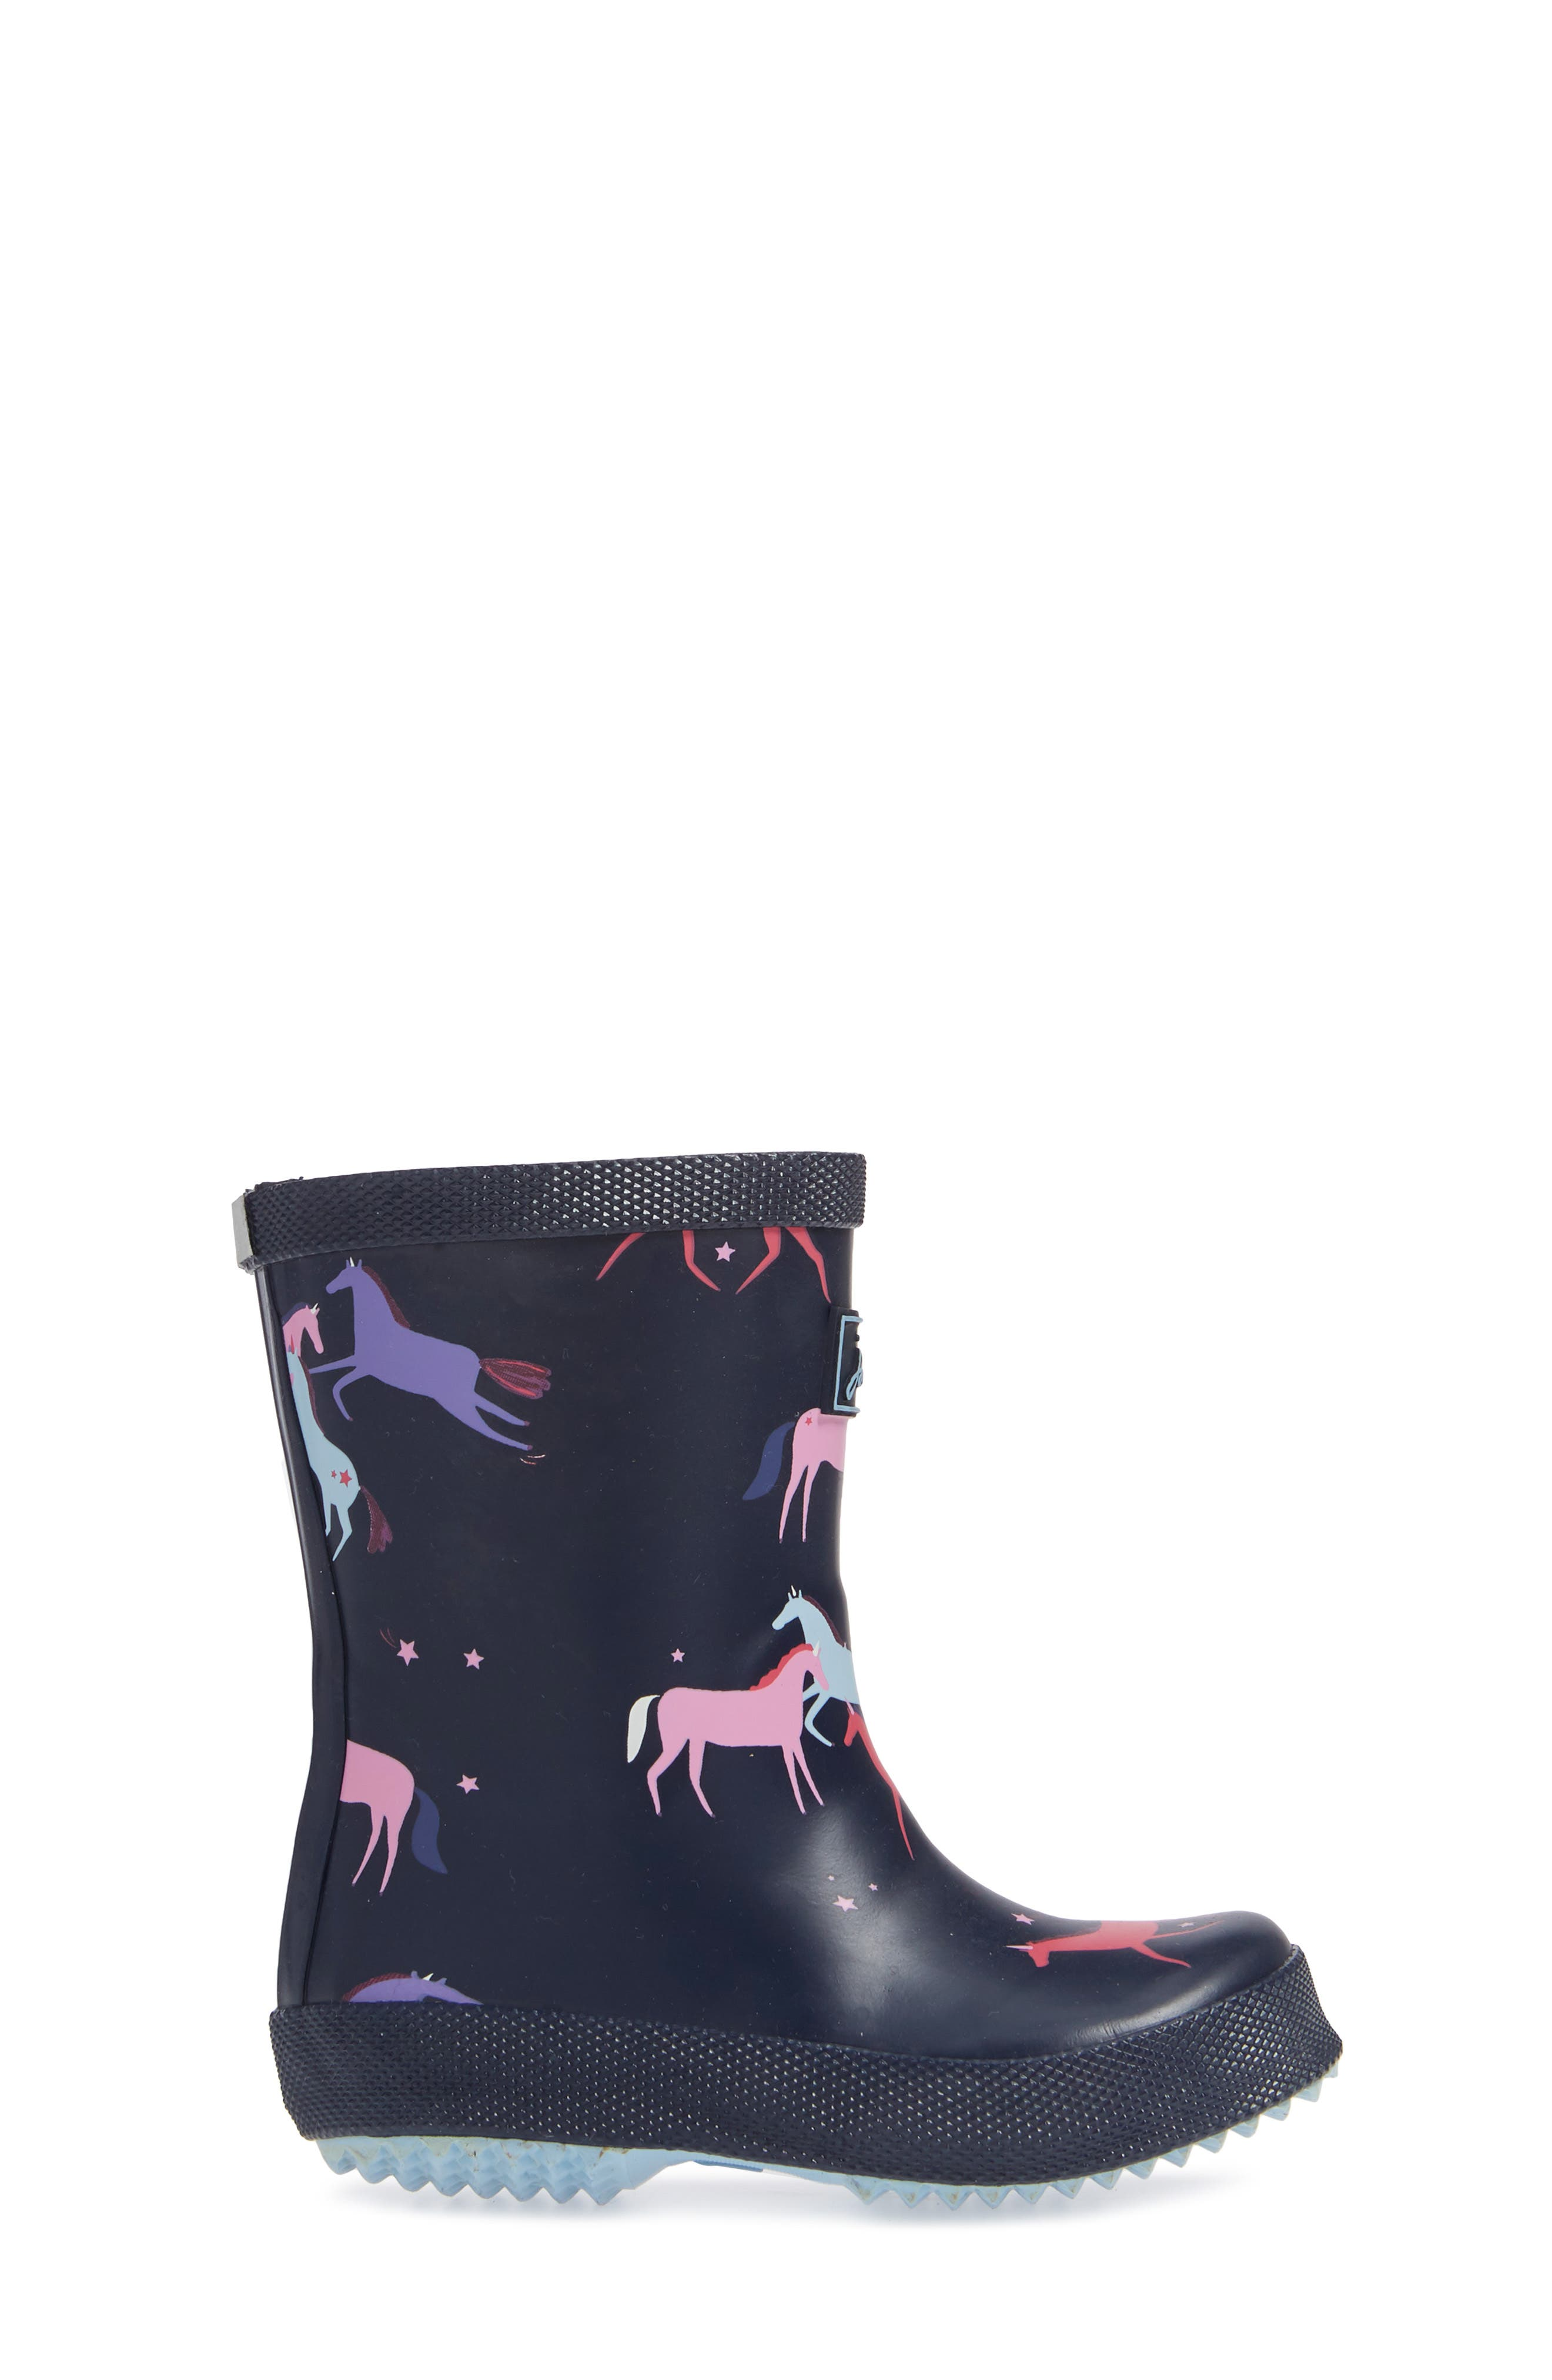 Baby Welly Print Waterproof Boot,                             Alternate thumbnail 3, color,                             NAVY MAGICAL UNICORN